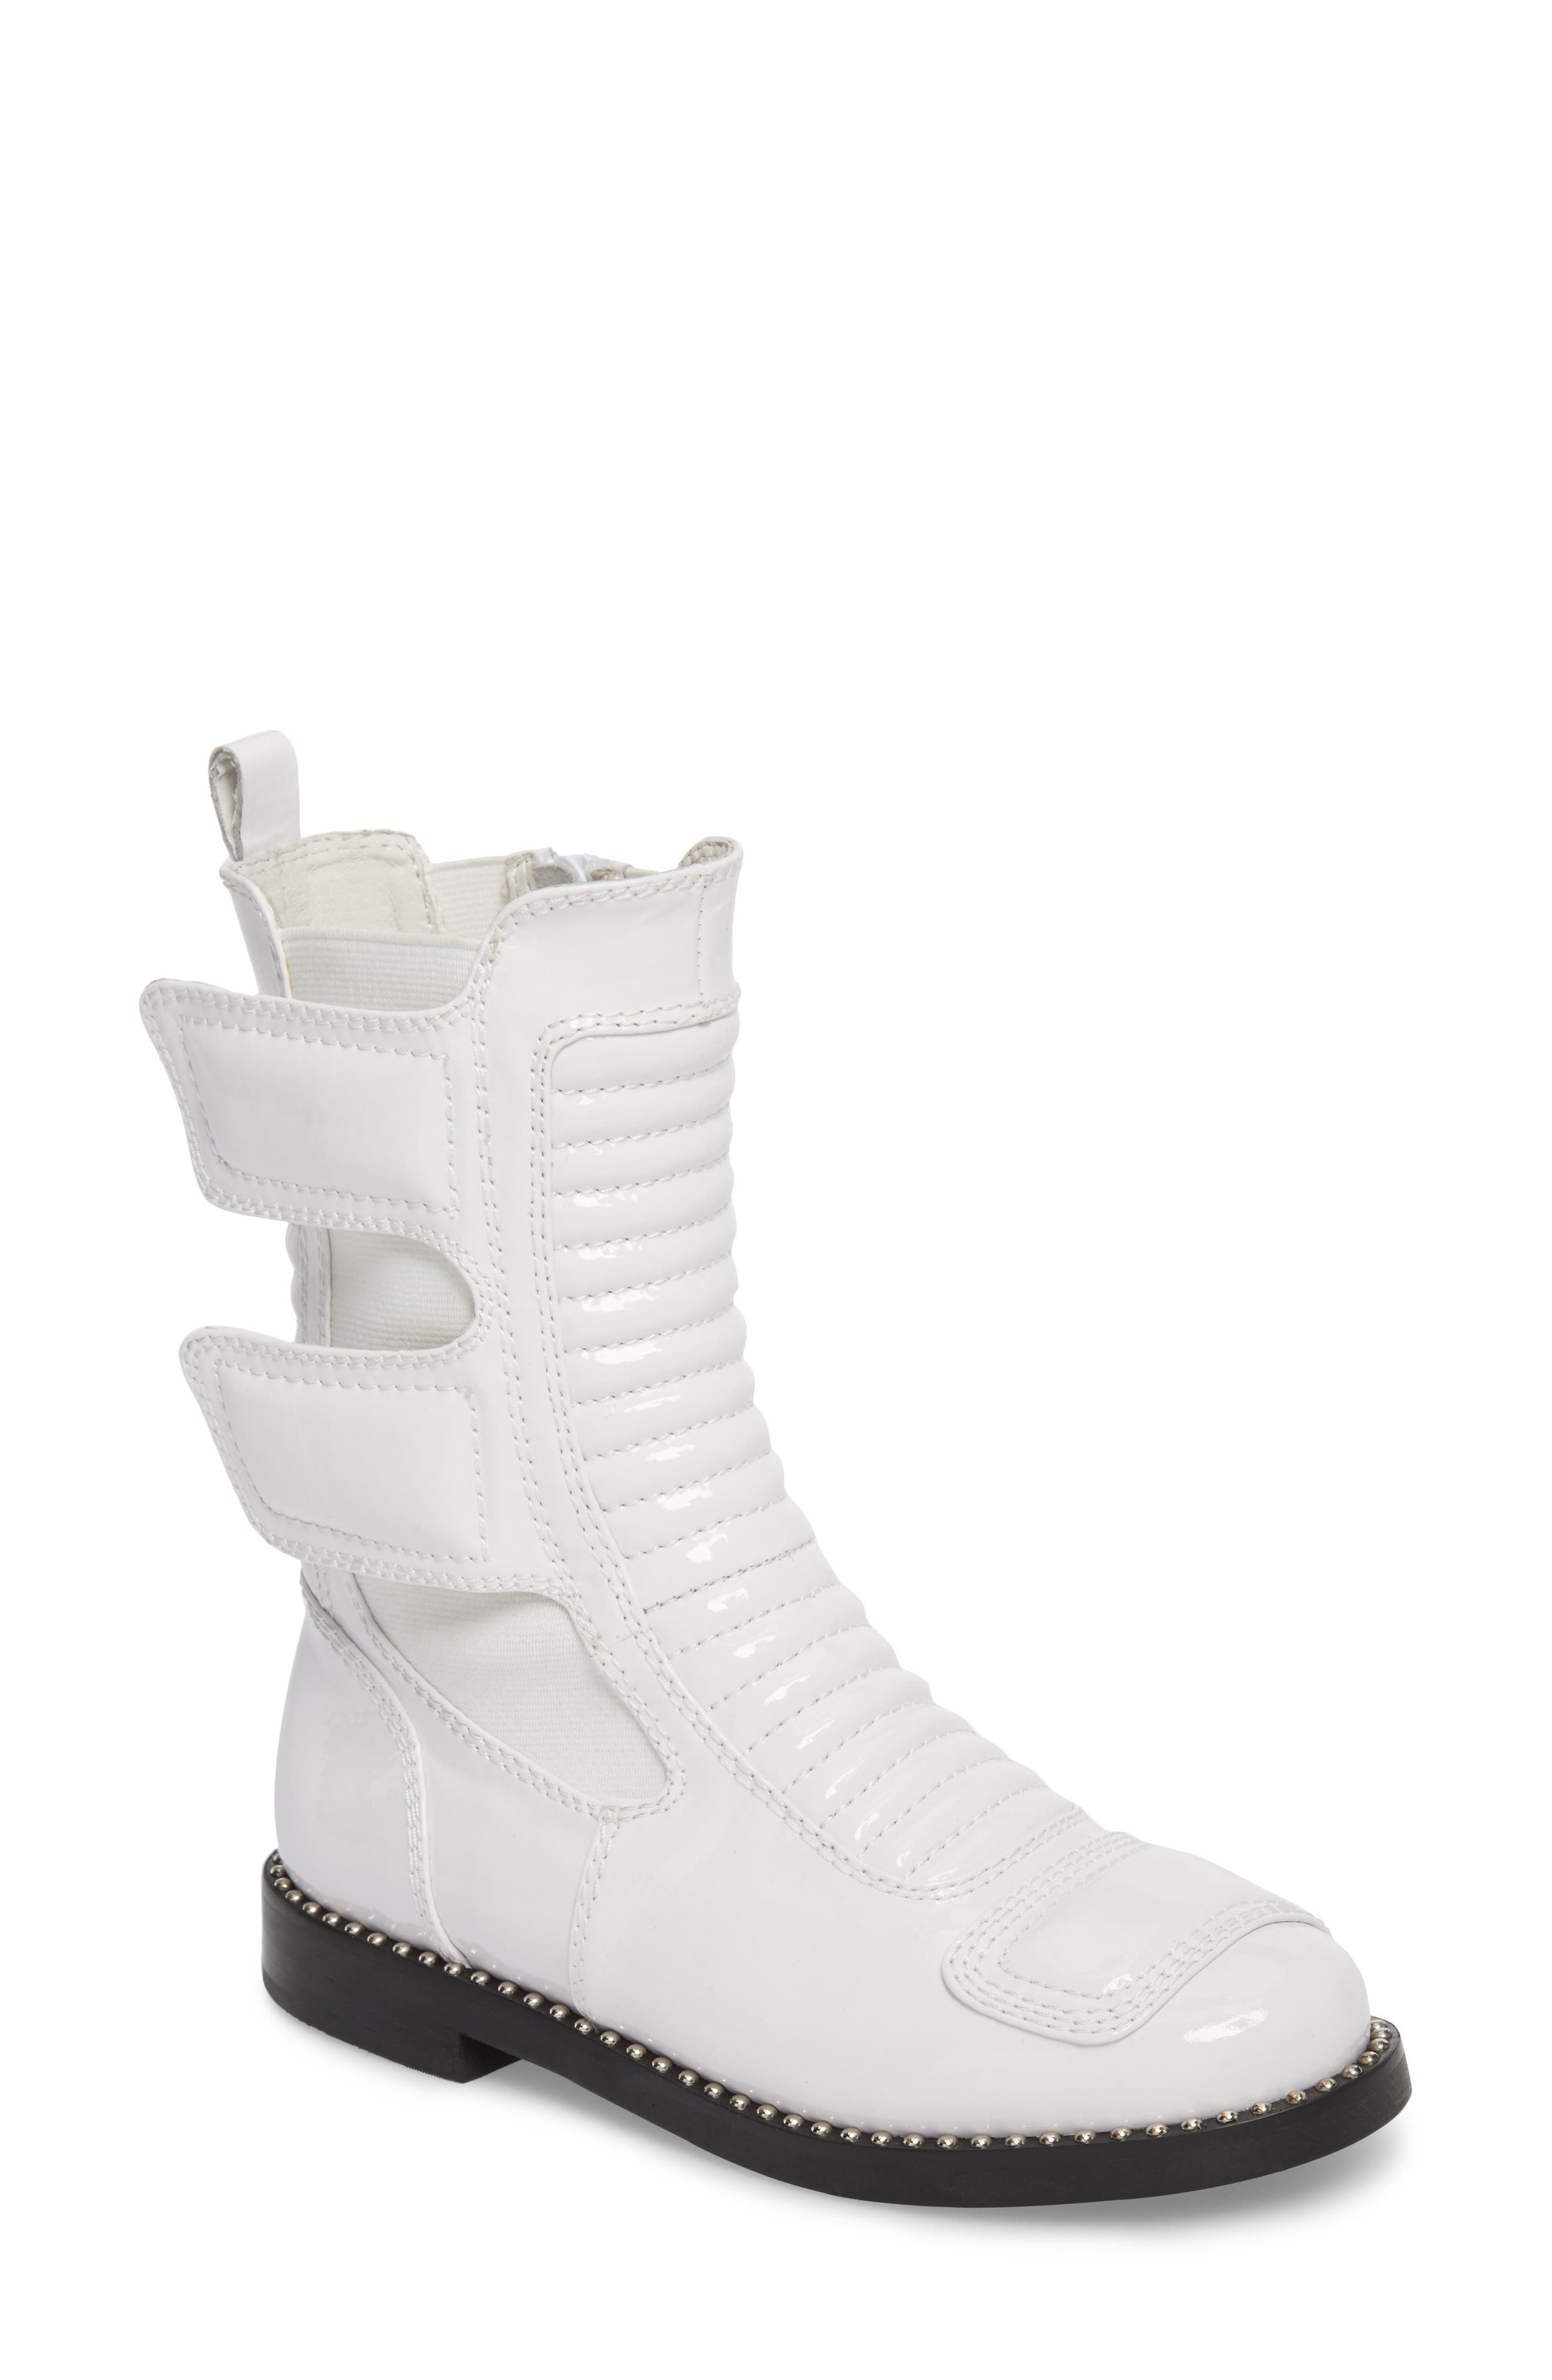 Police Boot,                         Main,                         color, White Patent Leather